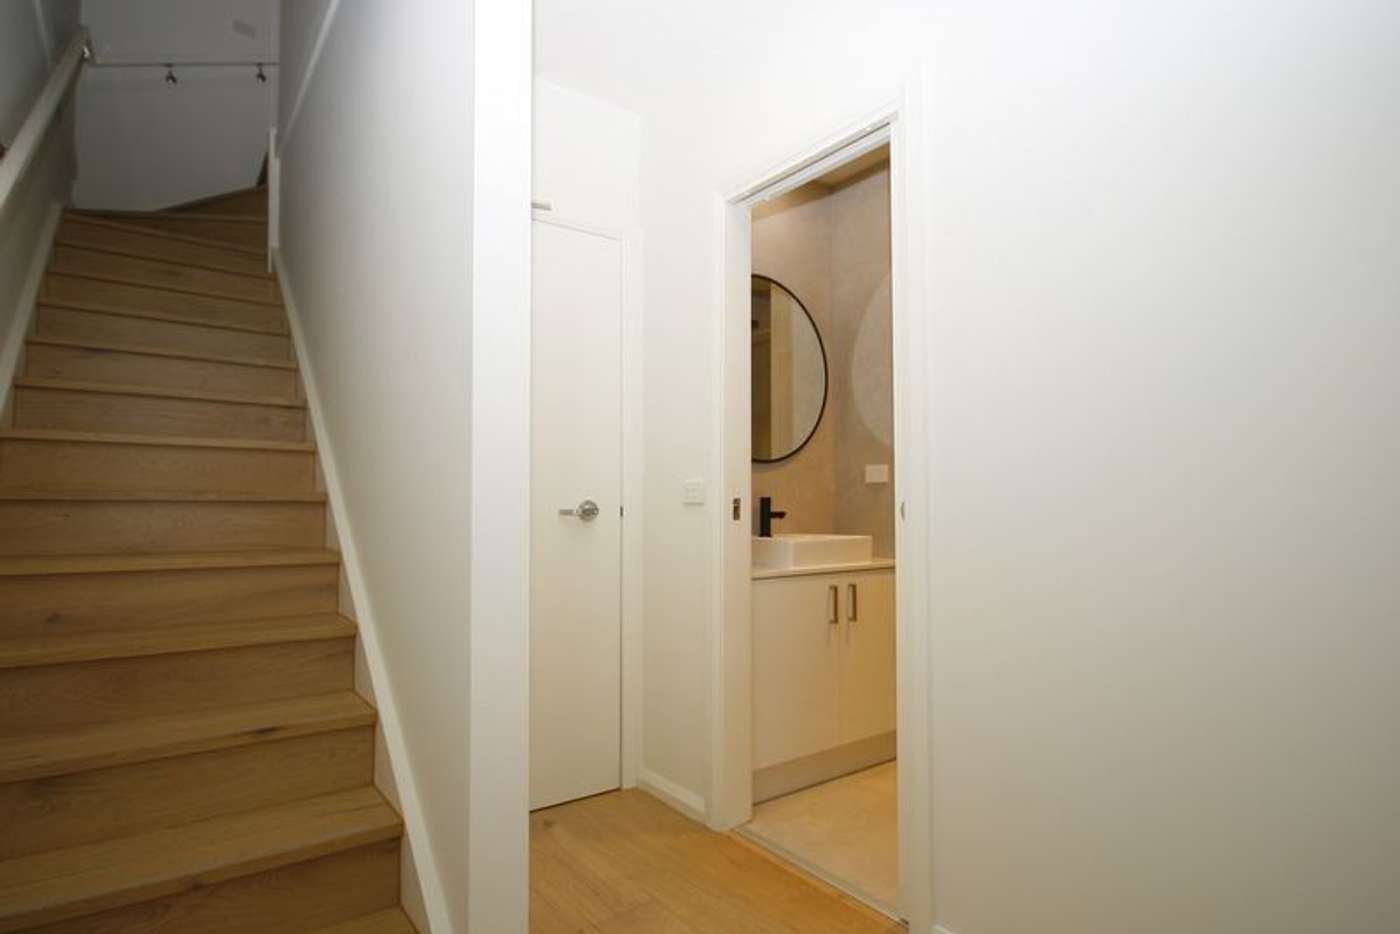 Sixth view of Homely townhouse listing, 9/17 Bent Street, Bentleigh VIC 3204